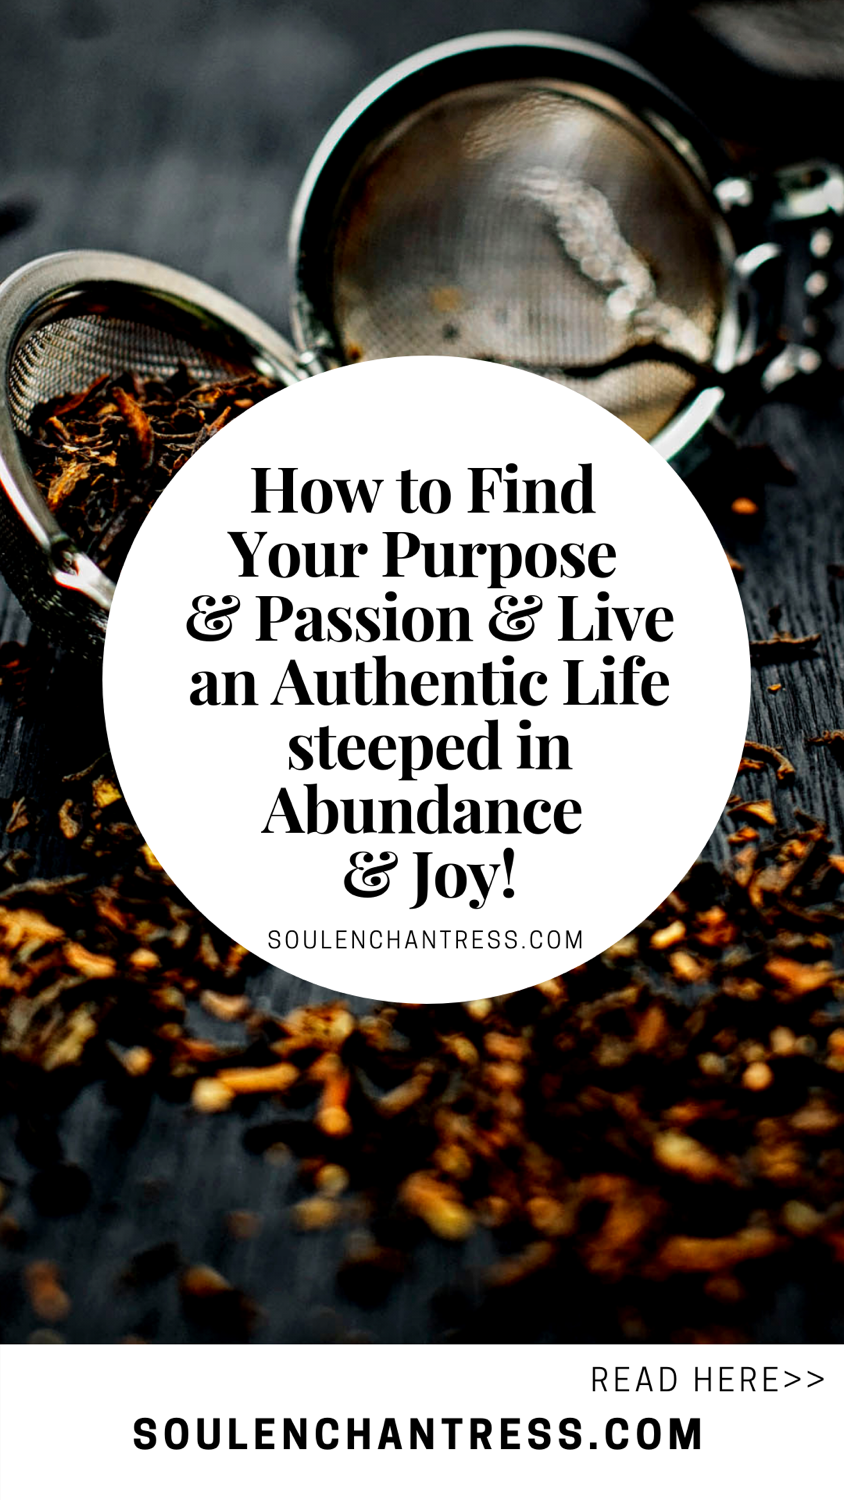 how to find your purpose in life, finding your passion, how to attract abundance and joy, soul enchantress, authentic living